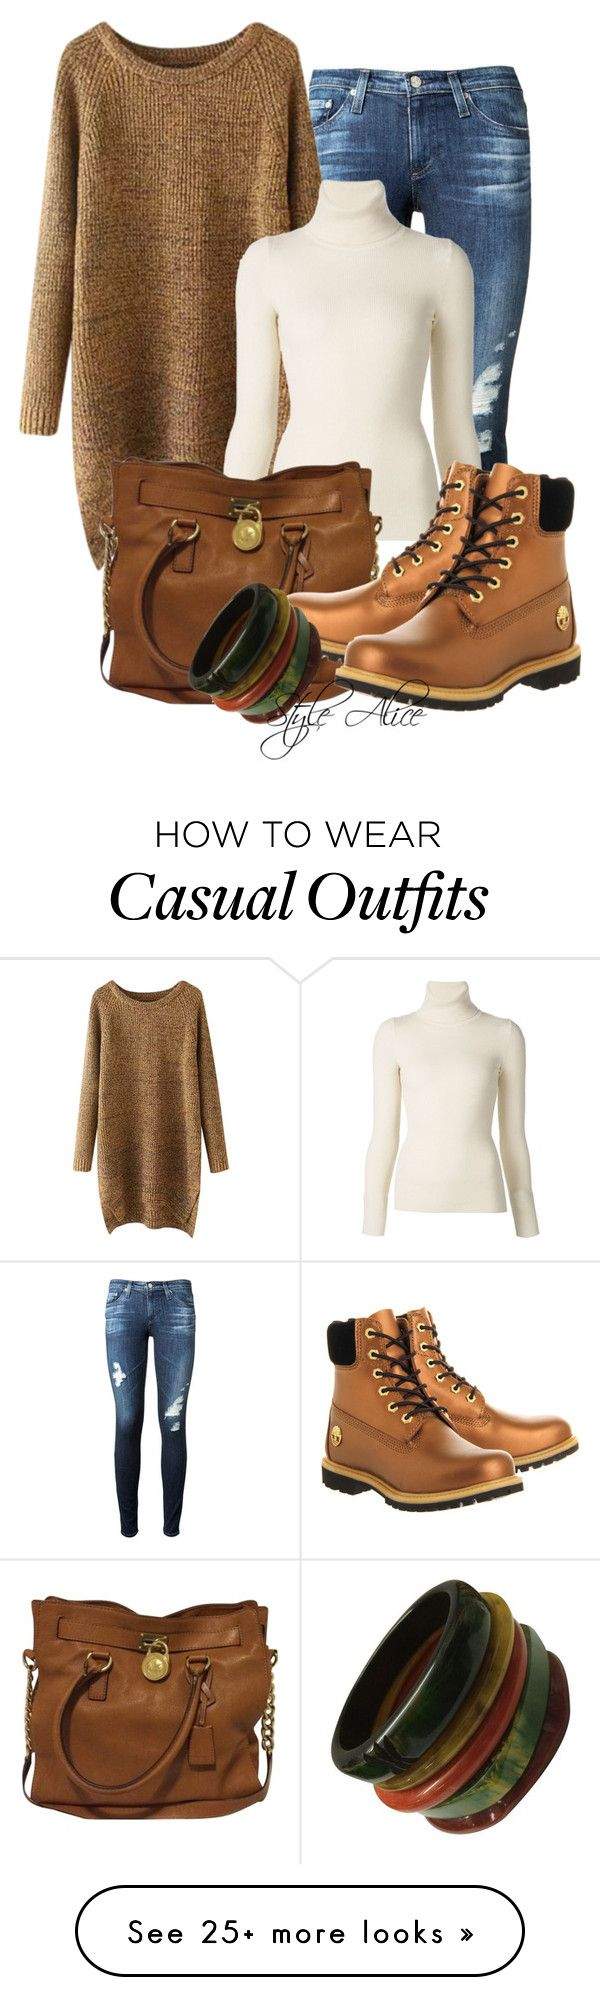 """Casual"" by alice-fortuna on Polyvore featuring AG Adriano Goldschmied, Chicnova Fashion, Emanuel Ungaro, MICHAEL Michael Kors and Timberland"